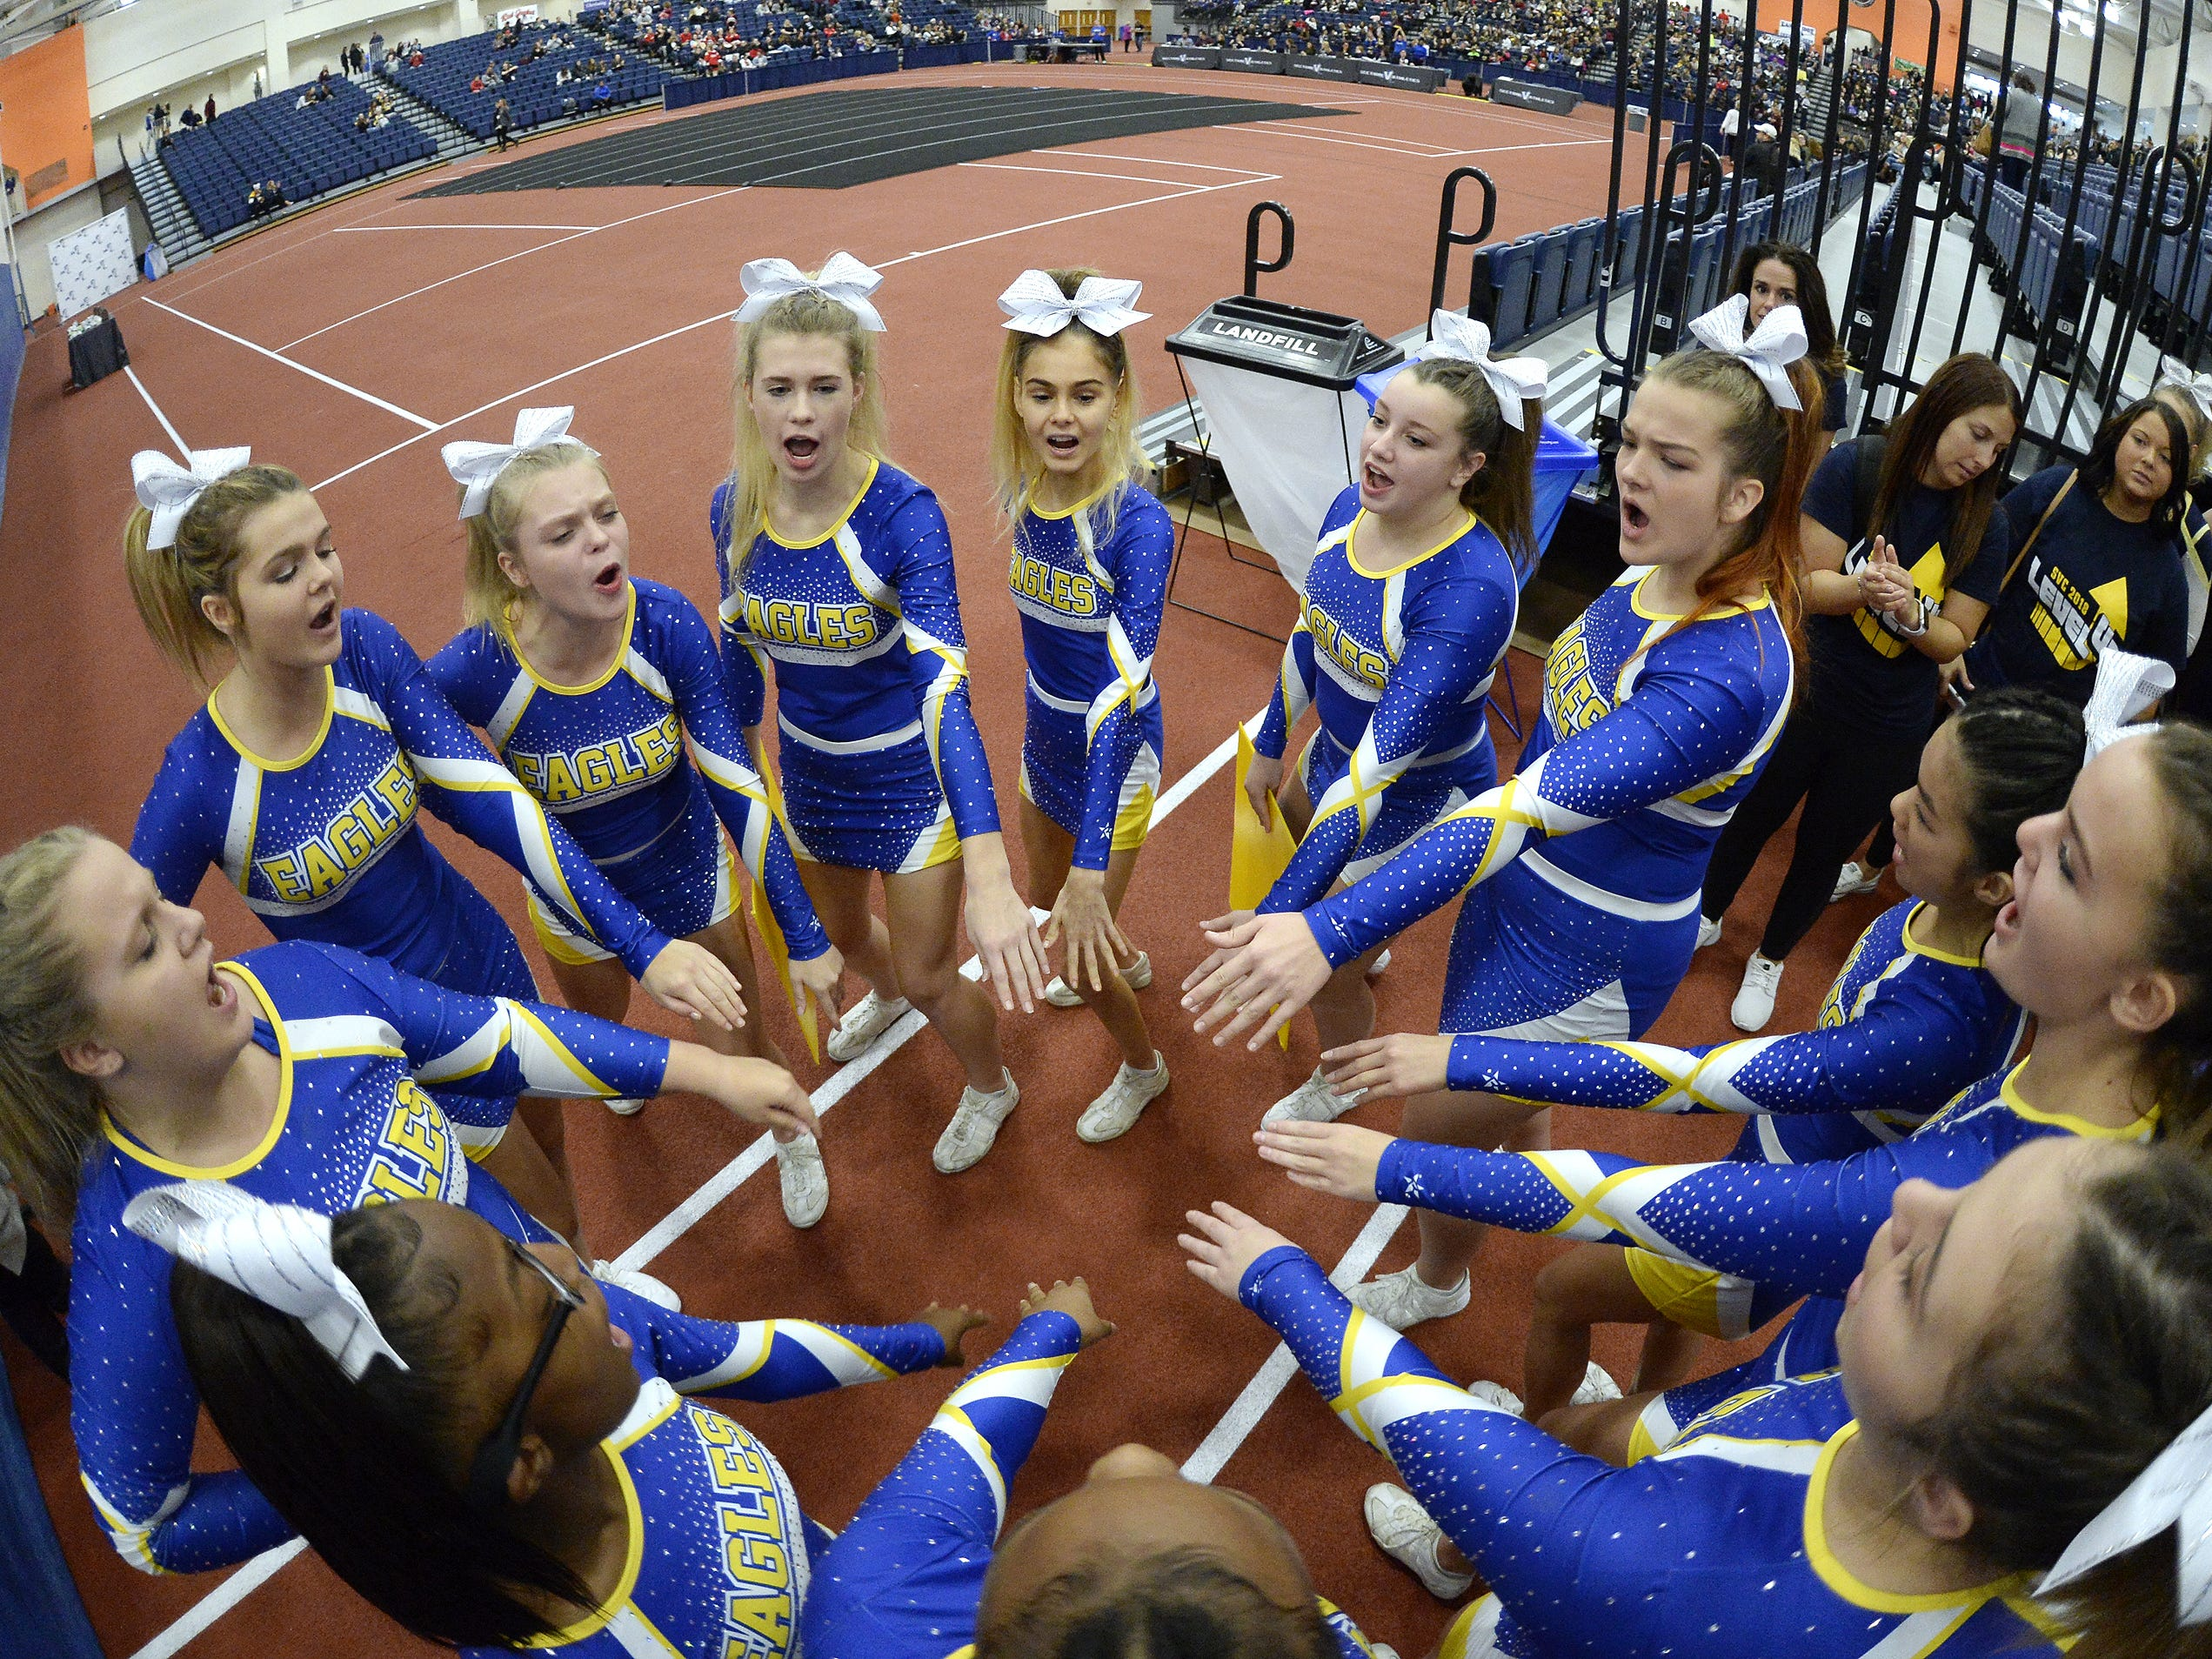 Irondequoit cheerleaders prepare to perform their routine during the Section V Fall Cheerleading Championships at RIT, Saturday, Oct. 27, 2018.